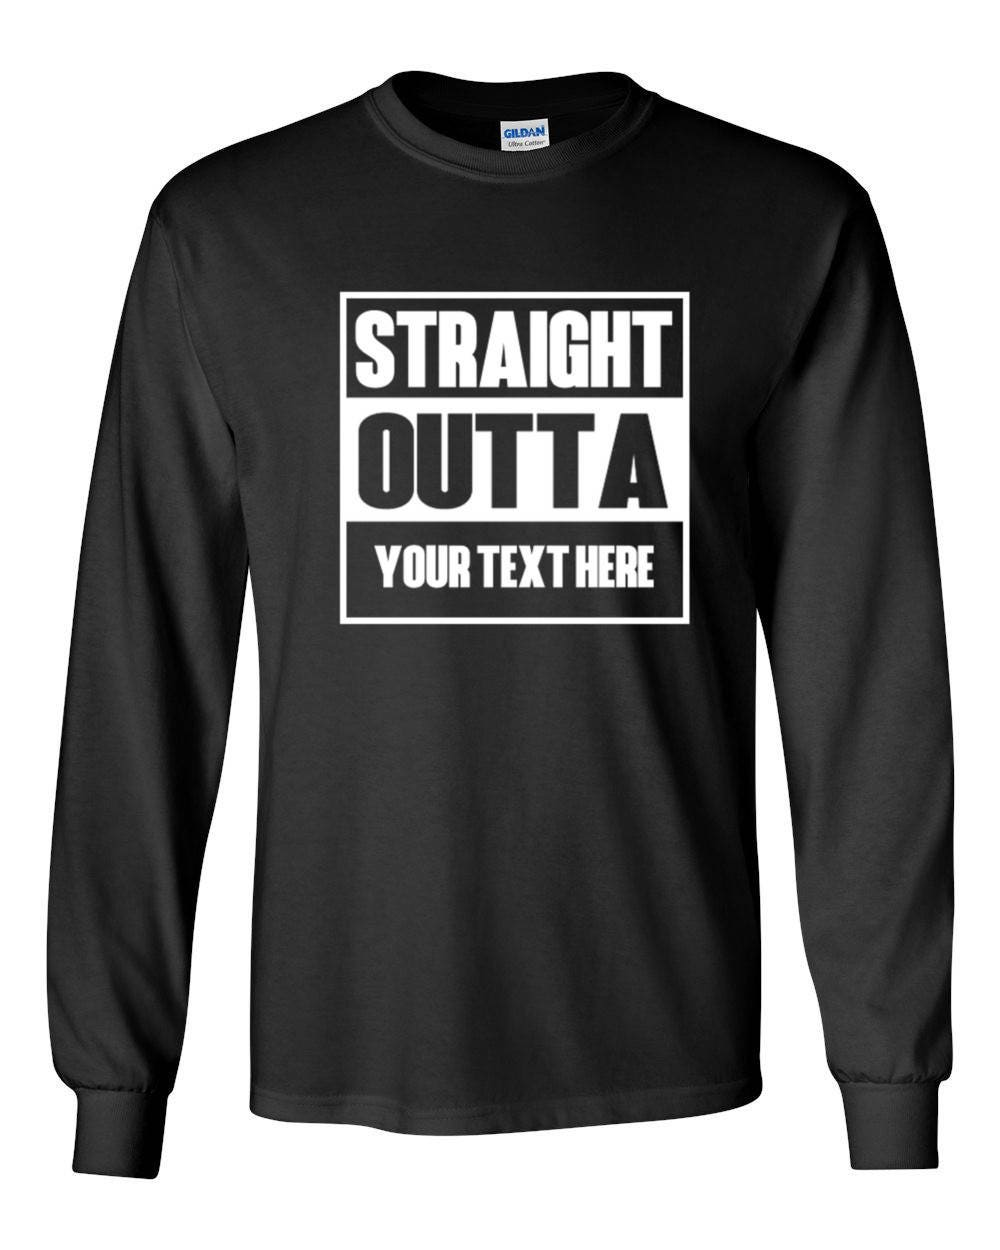 Mens Long Sleeve Straight Outta Shirt Personalized Customized T